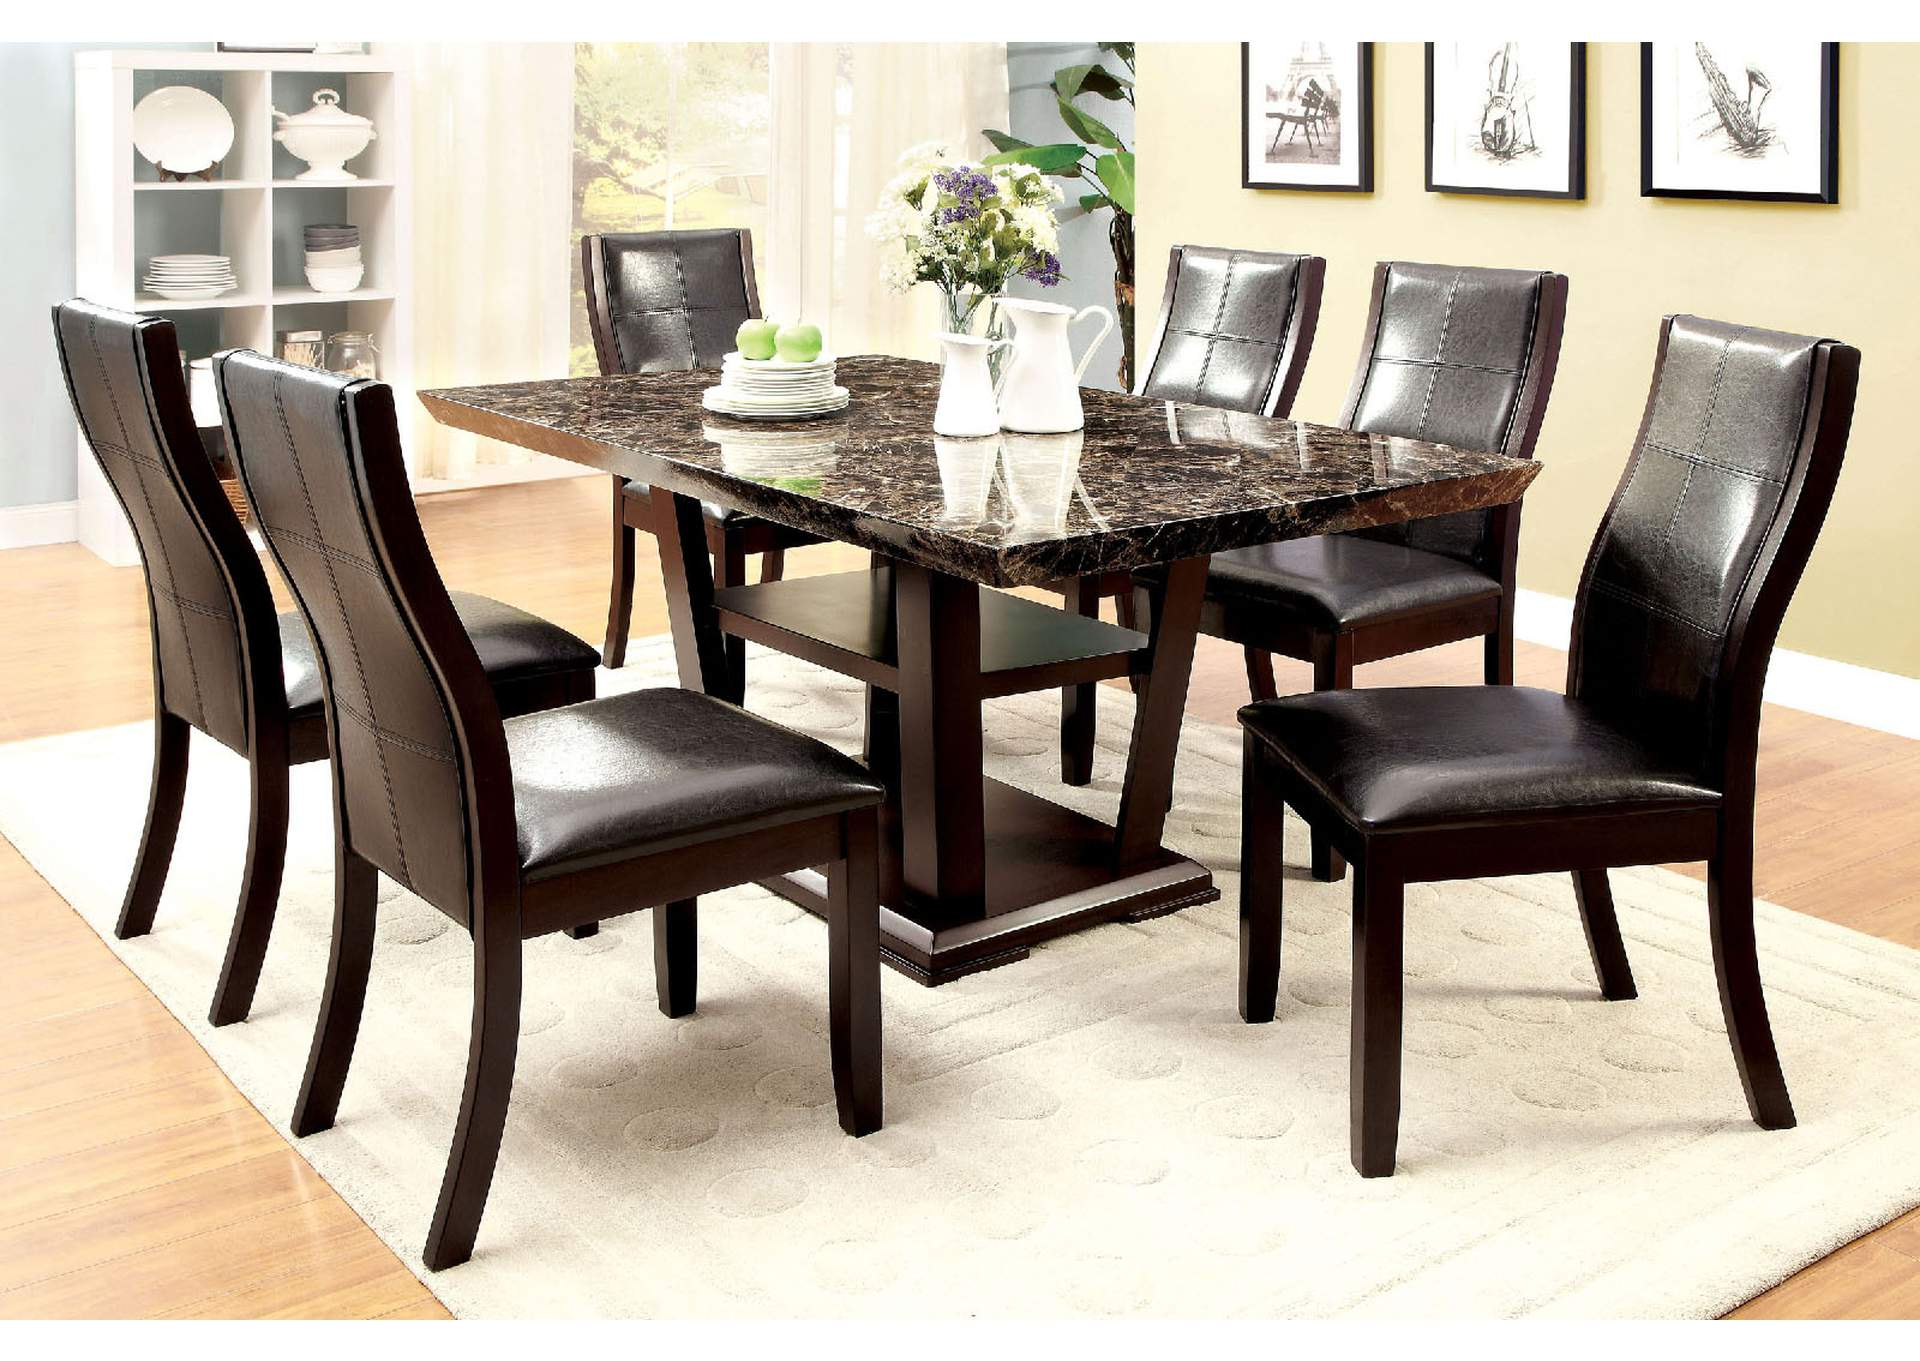 Clayton l Dining Table w/Faux Marble Top,Furniture of America